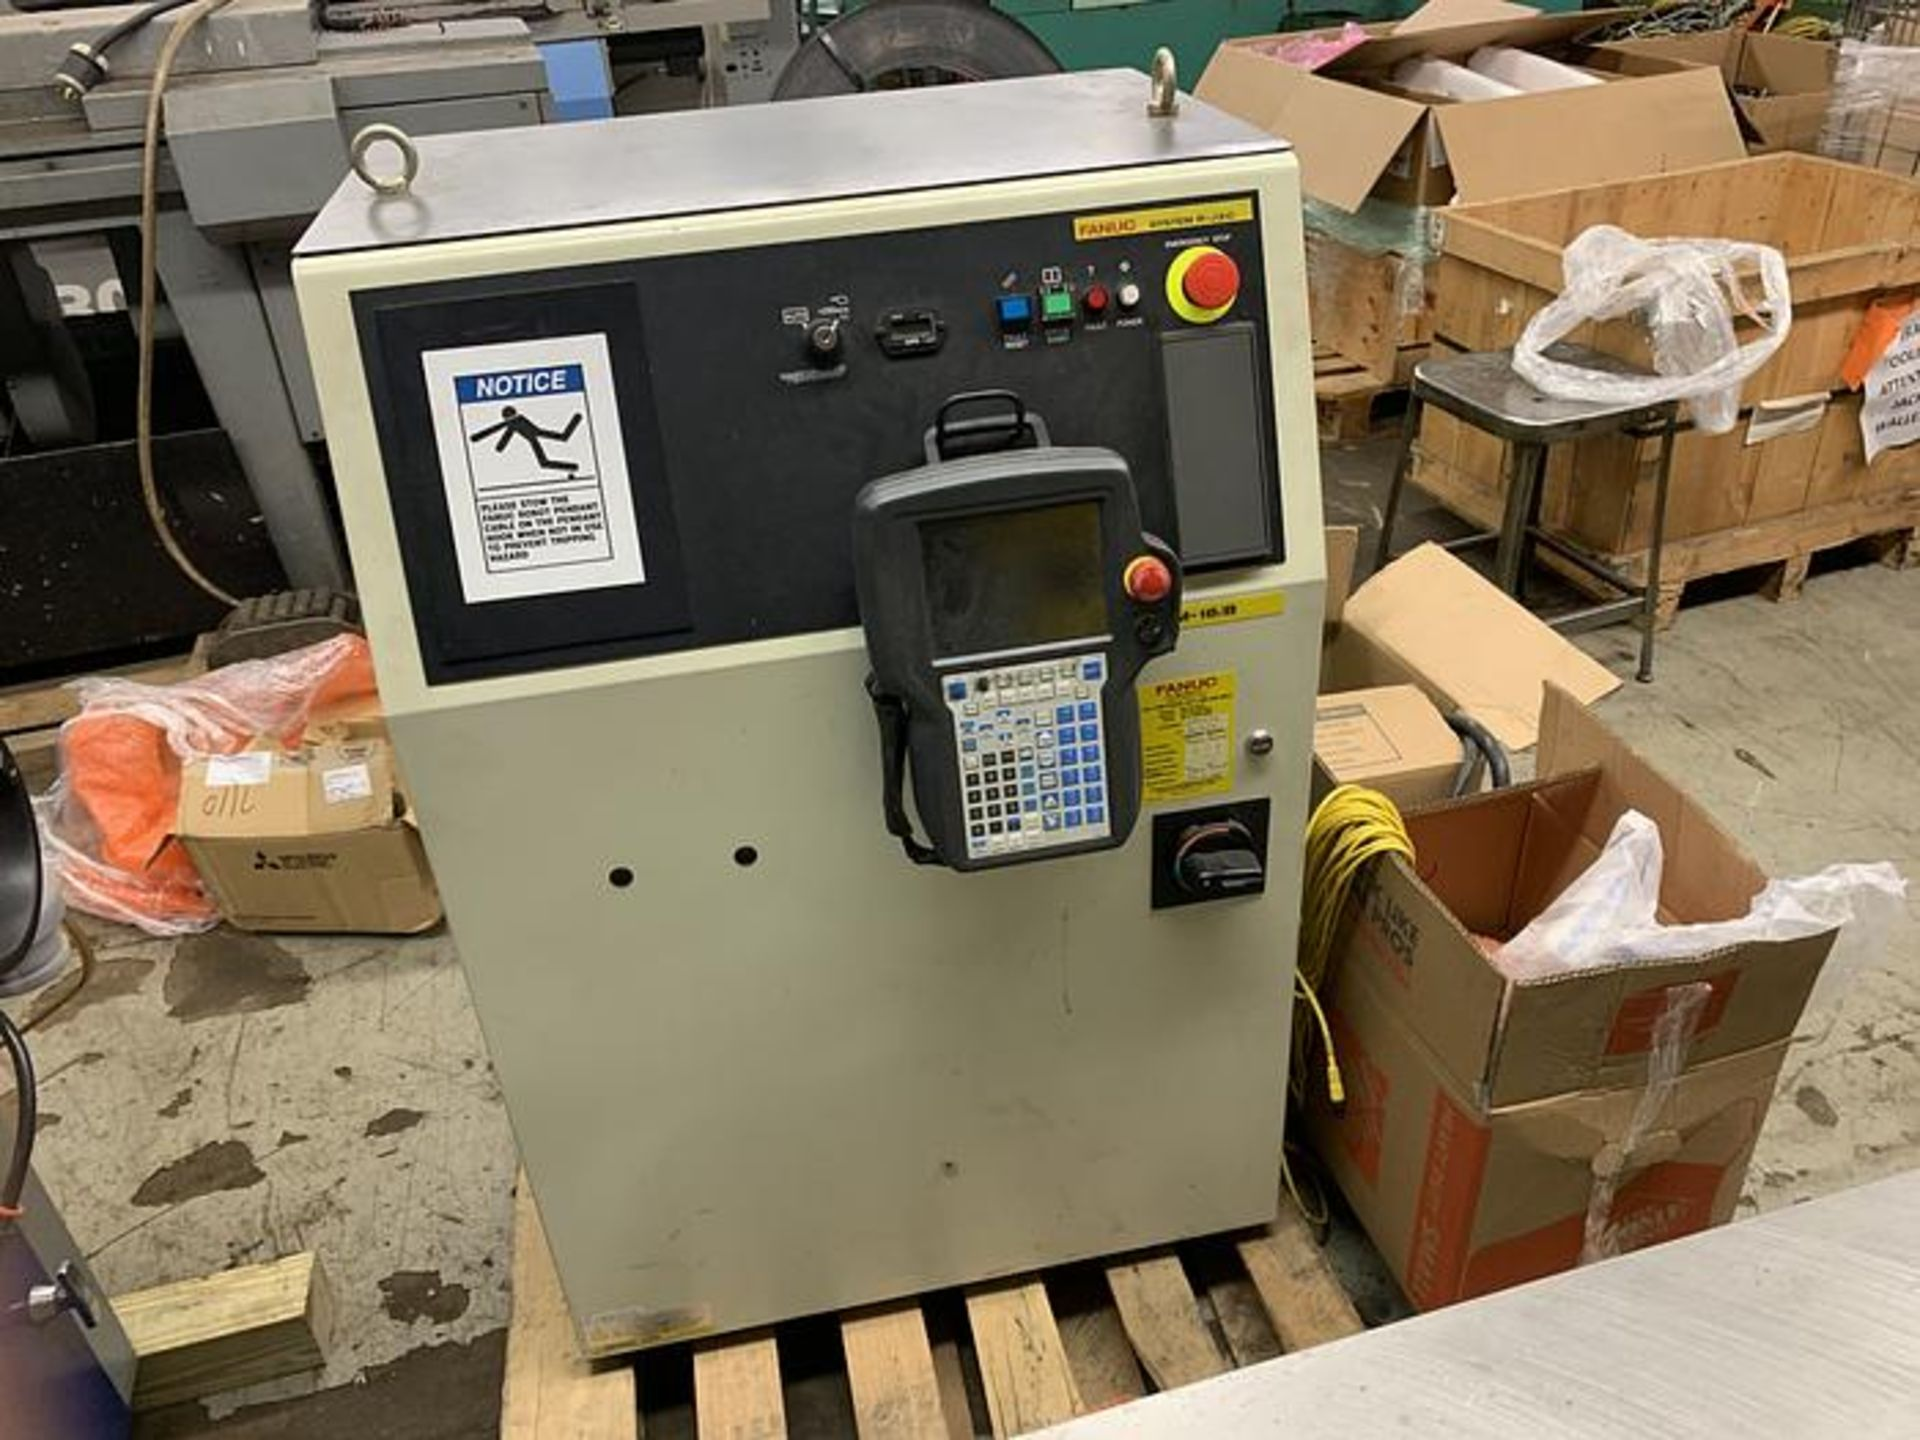 FANUC ROBOT M16iB/10L WITH RJ3iC (R30iA) CONTROLLER, TEACH & CABLES, YEAR 2006, SN 80306 - Image 11 of 17